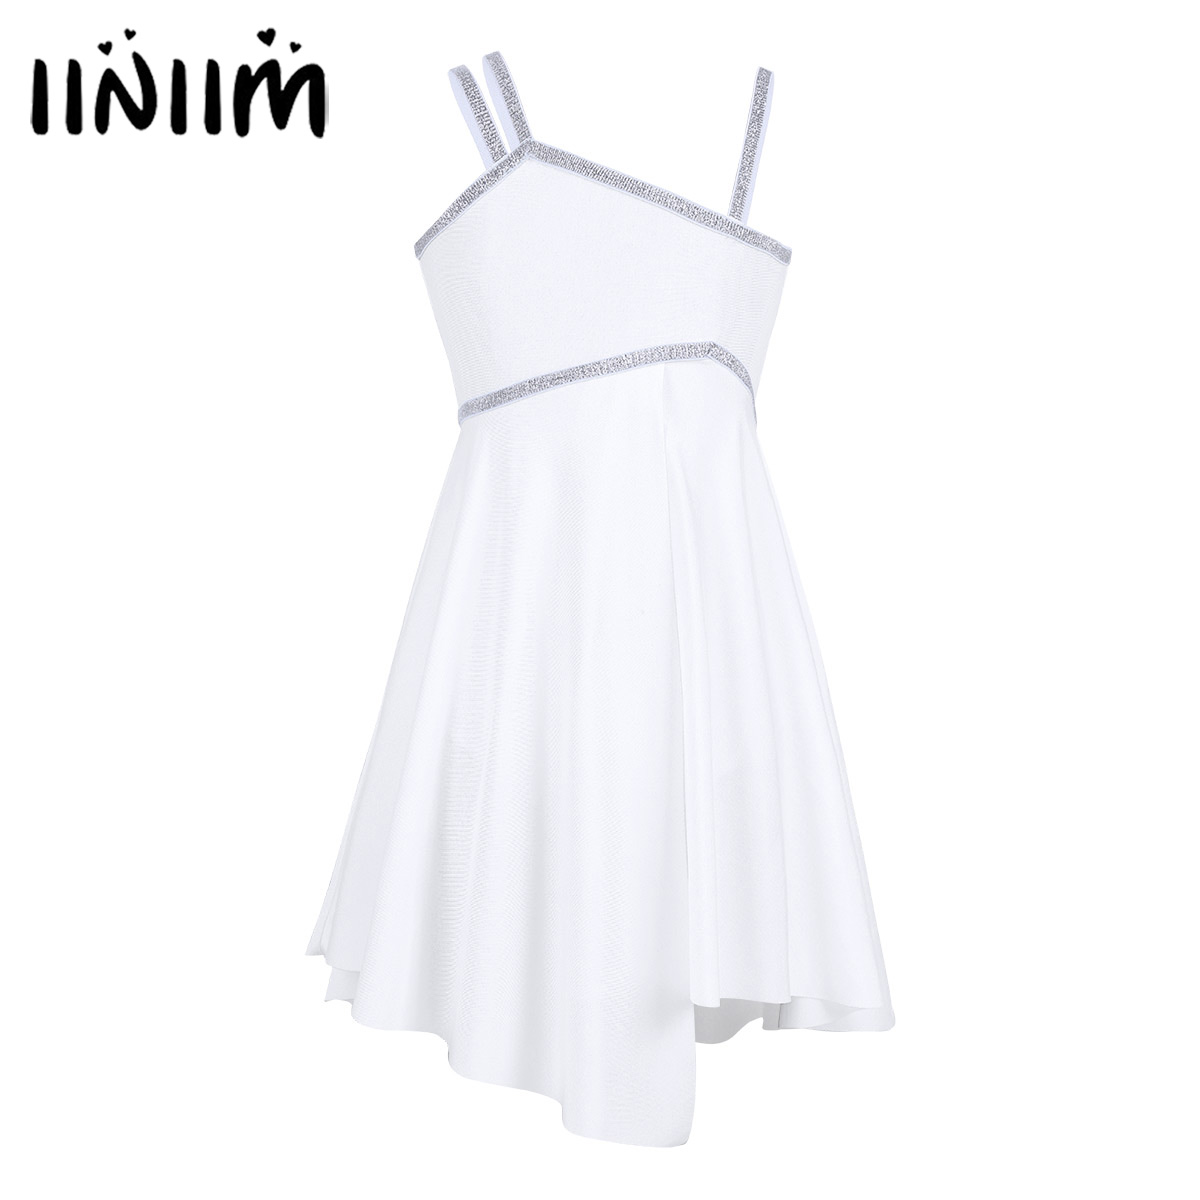 iiniim Kids Children's Ballet Dance Tutu Dress Ballerina Shoulder Straps Shiny Gymnastics Leotard Dancewear Girls Costumes Dress